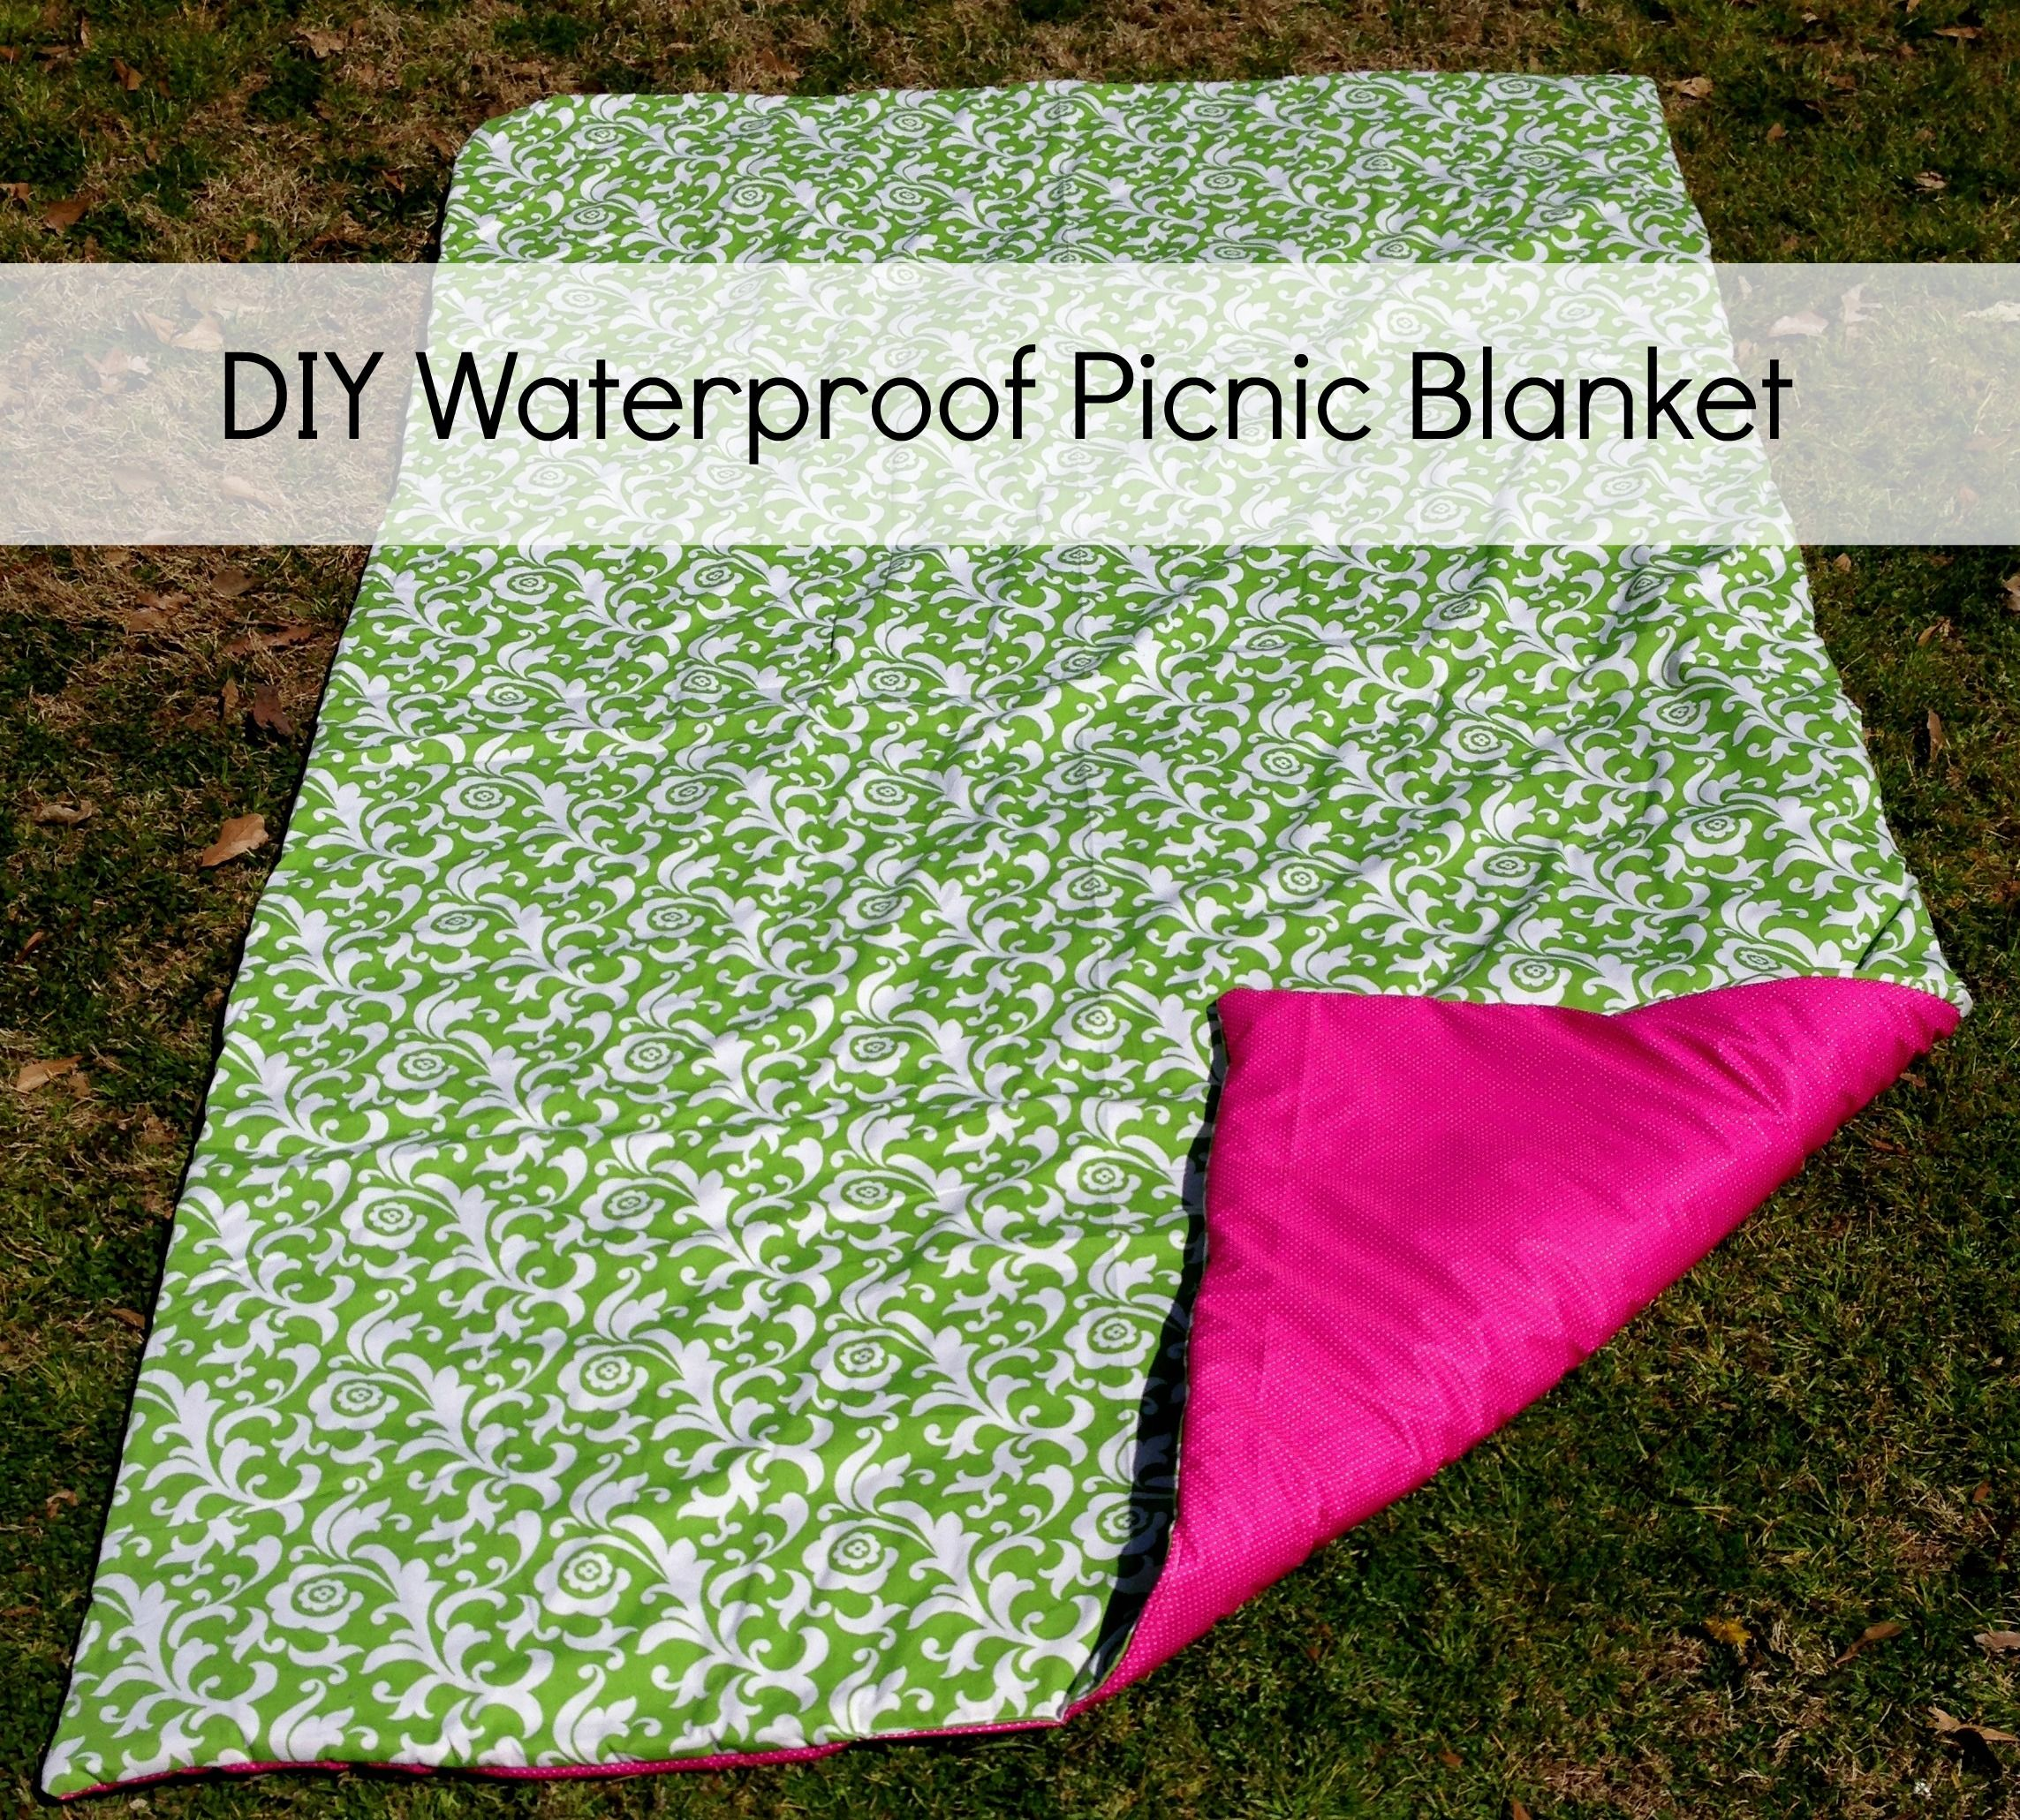 Diy Waterproof Picnic Blanket